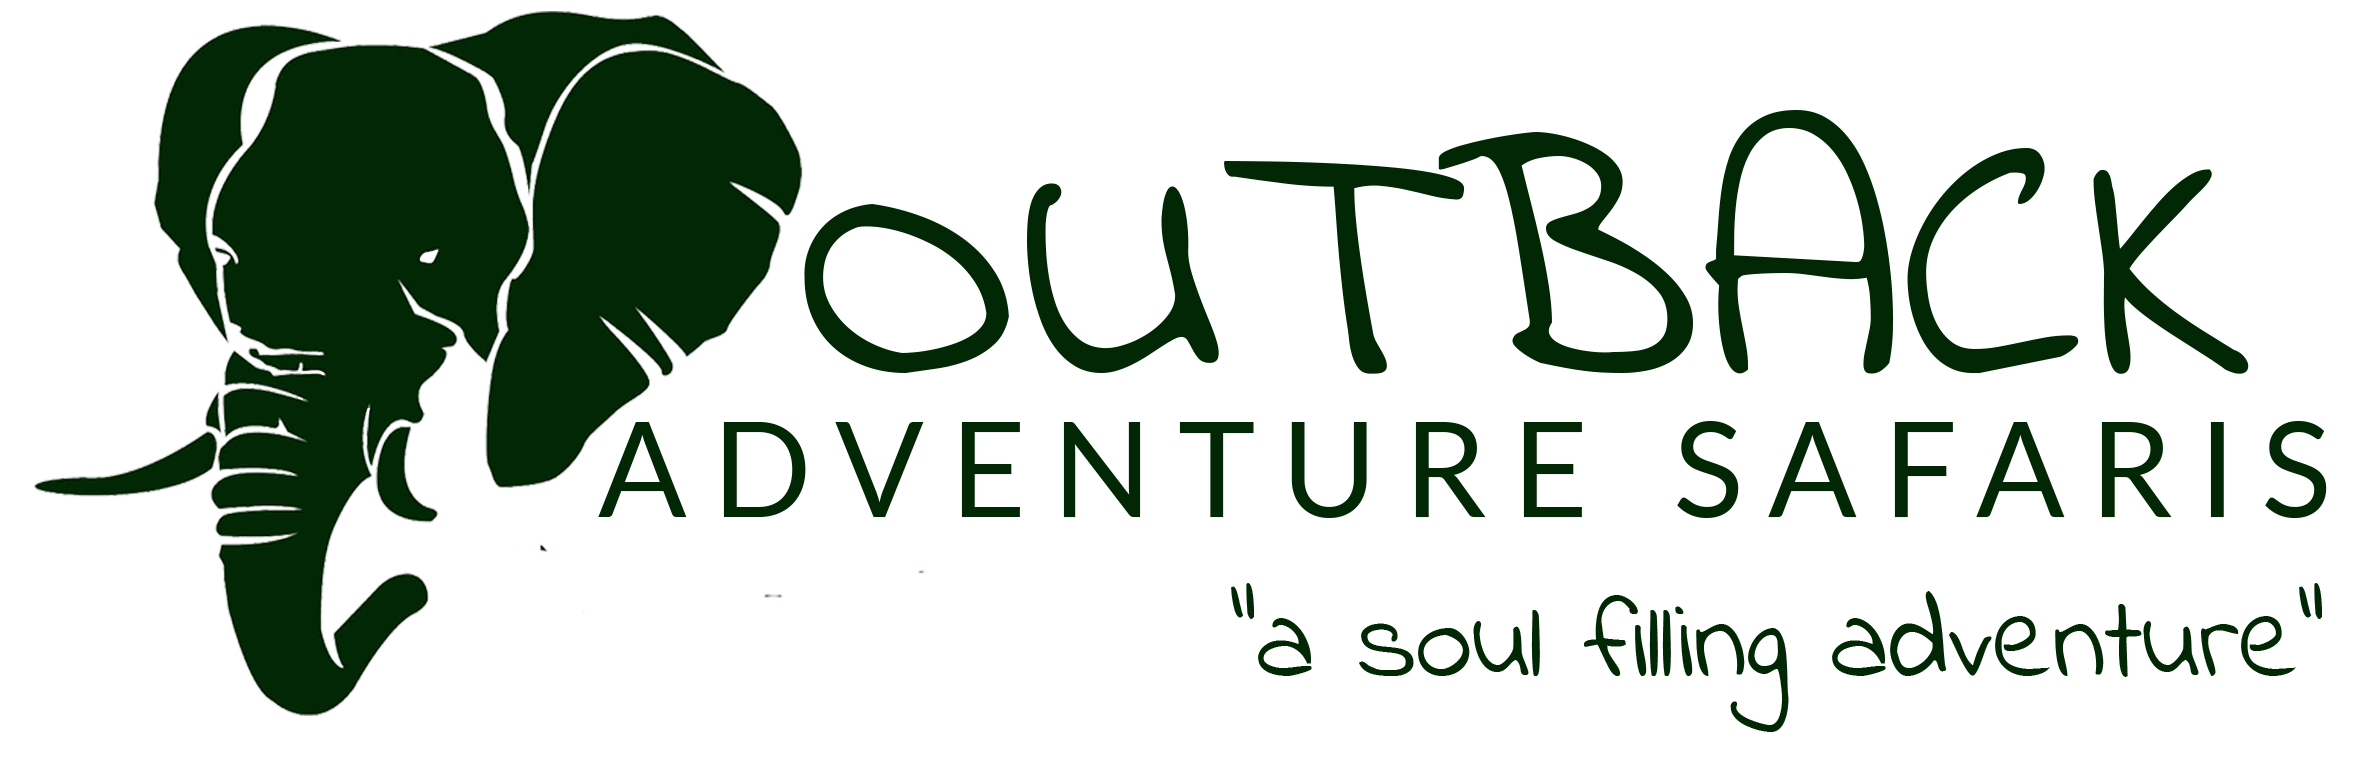 logo_outback-safaris